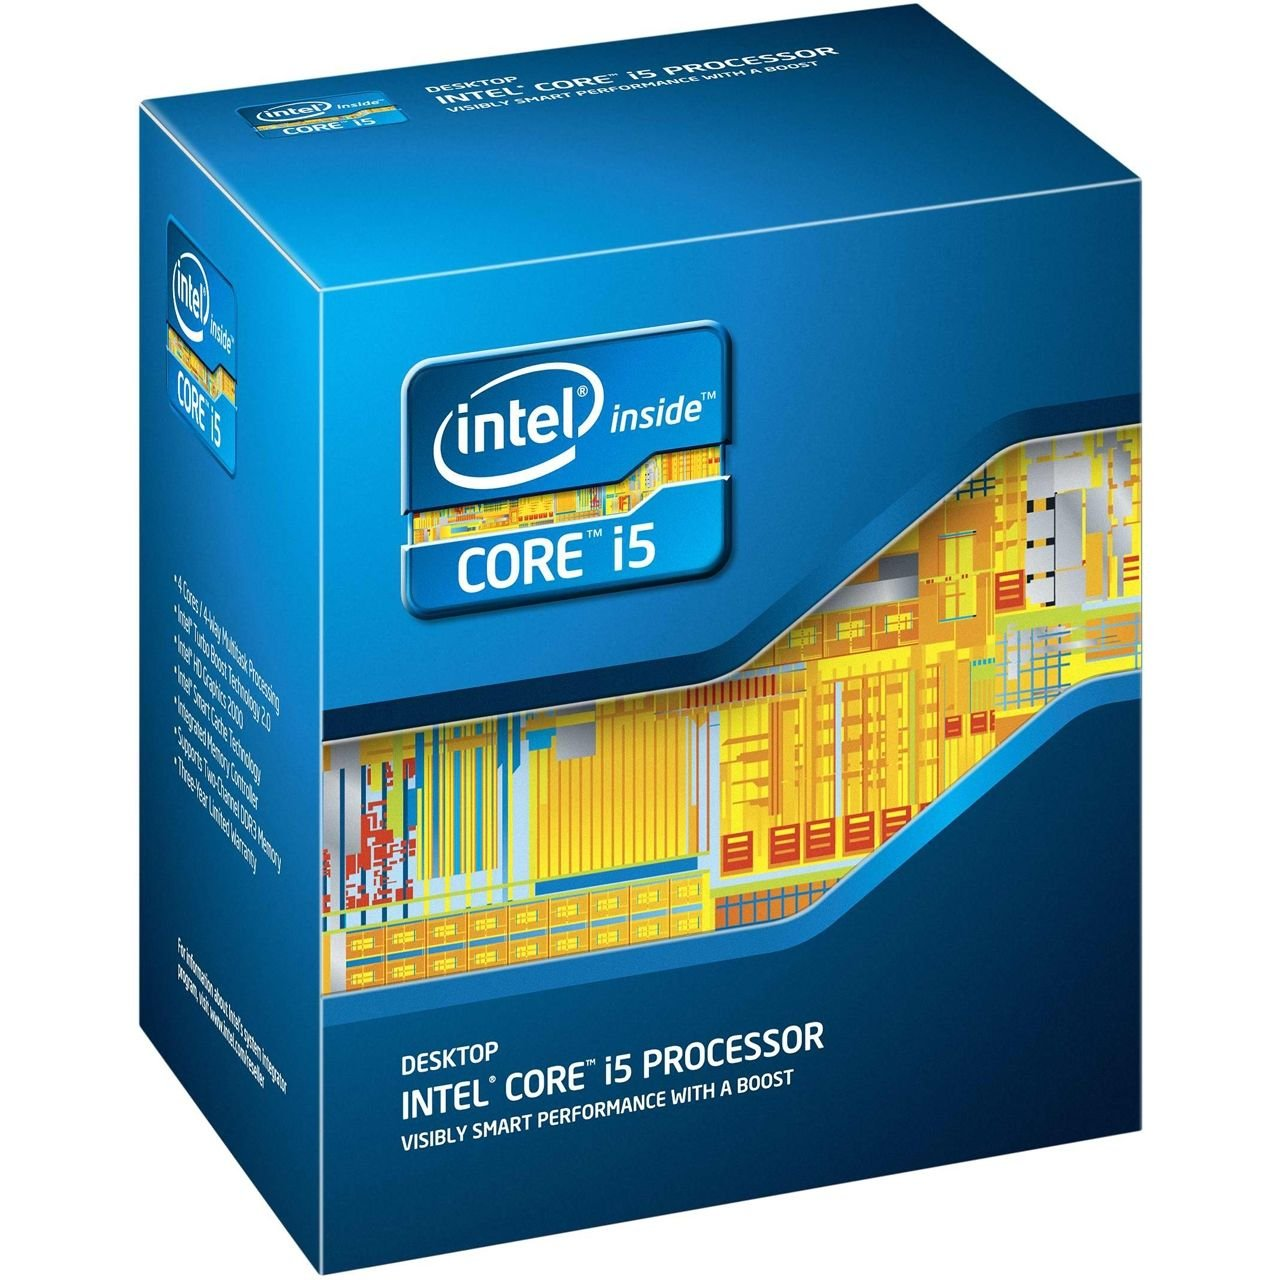 Intel Core i5-4430 Quad-Core Desktop Processor 3.0 GHz 6 MB Cache LGA 1150 - BX80646I54430 by Intel